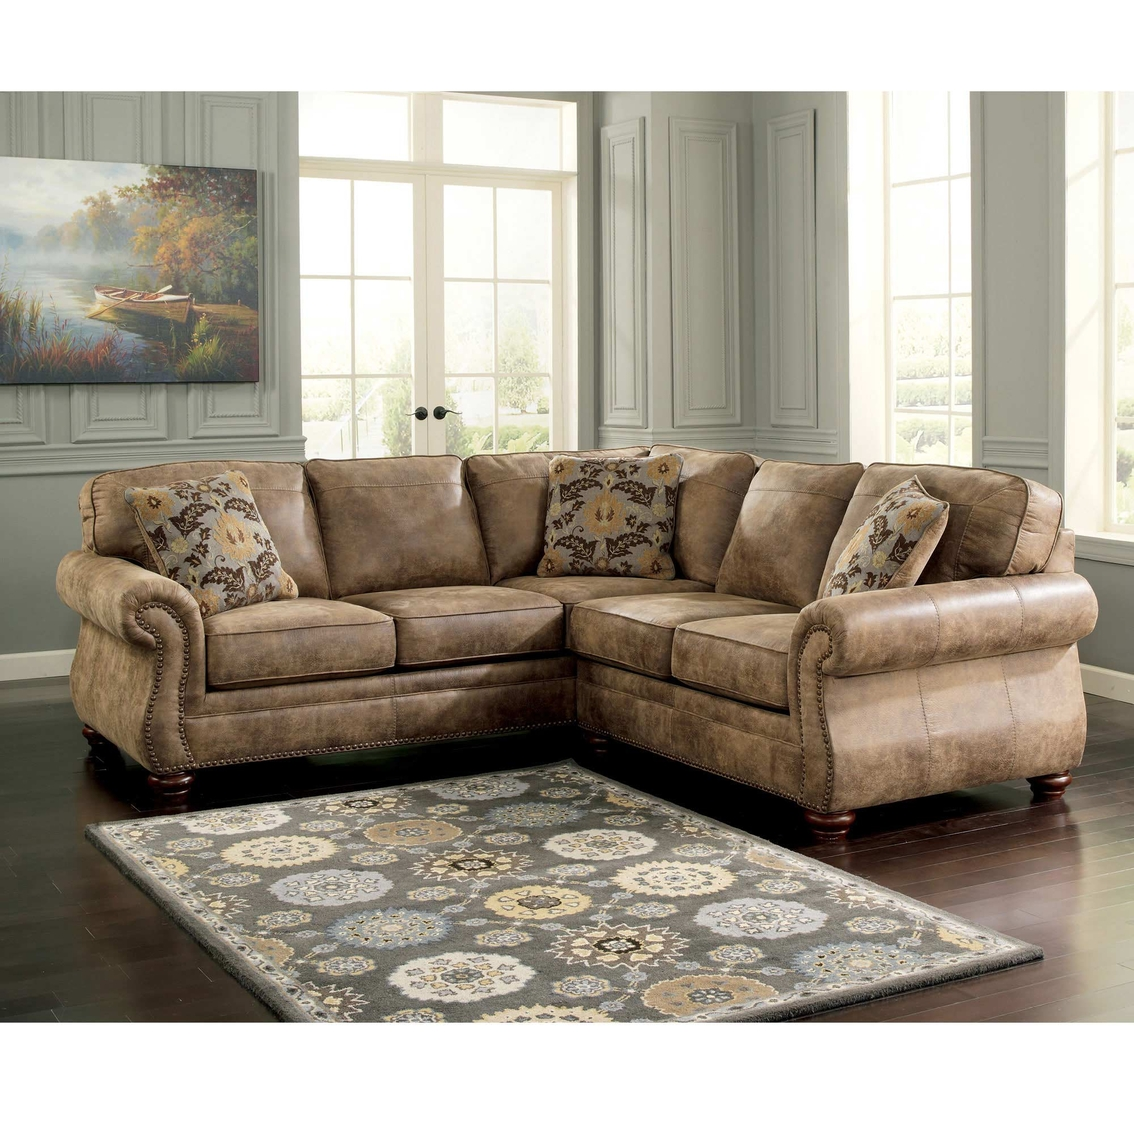 Ashley Sofas And Sectionals: Signature Design By Ashley Larkinhurst 2 Pc. Sectional Raf